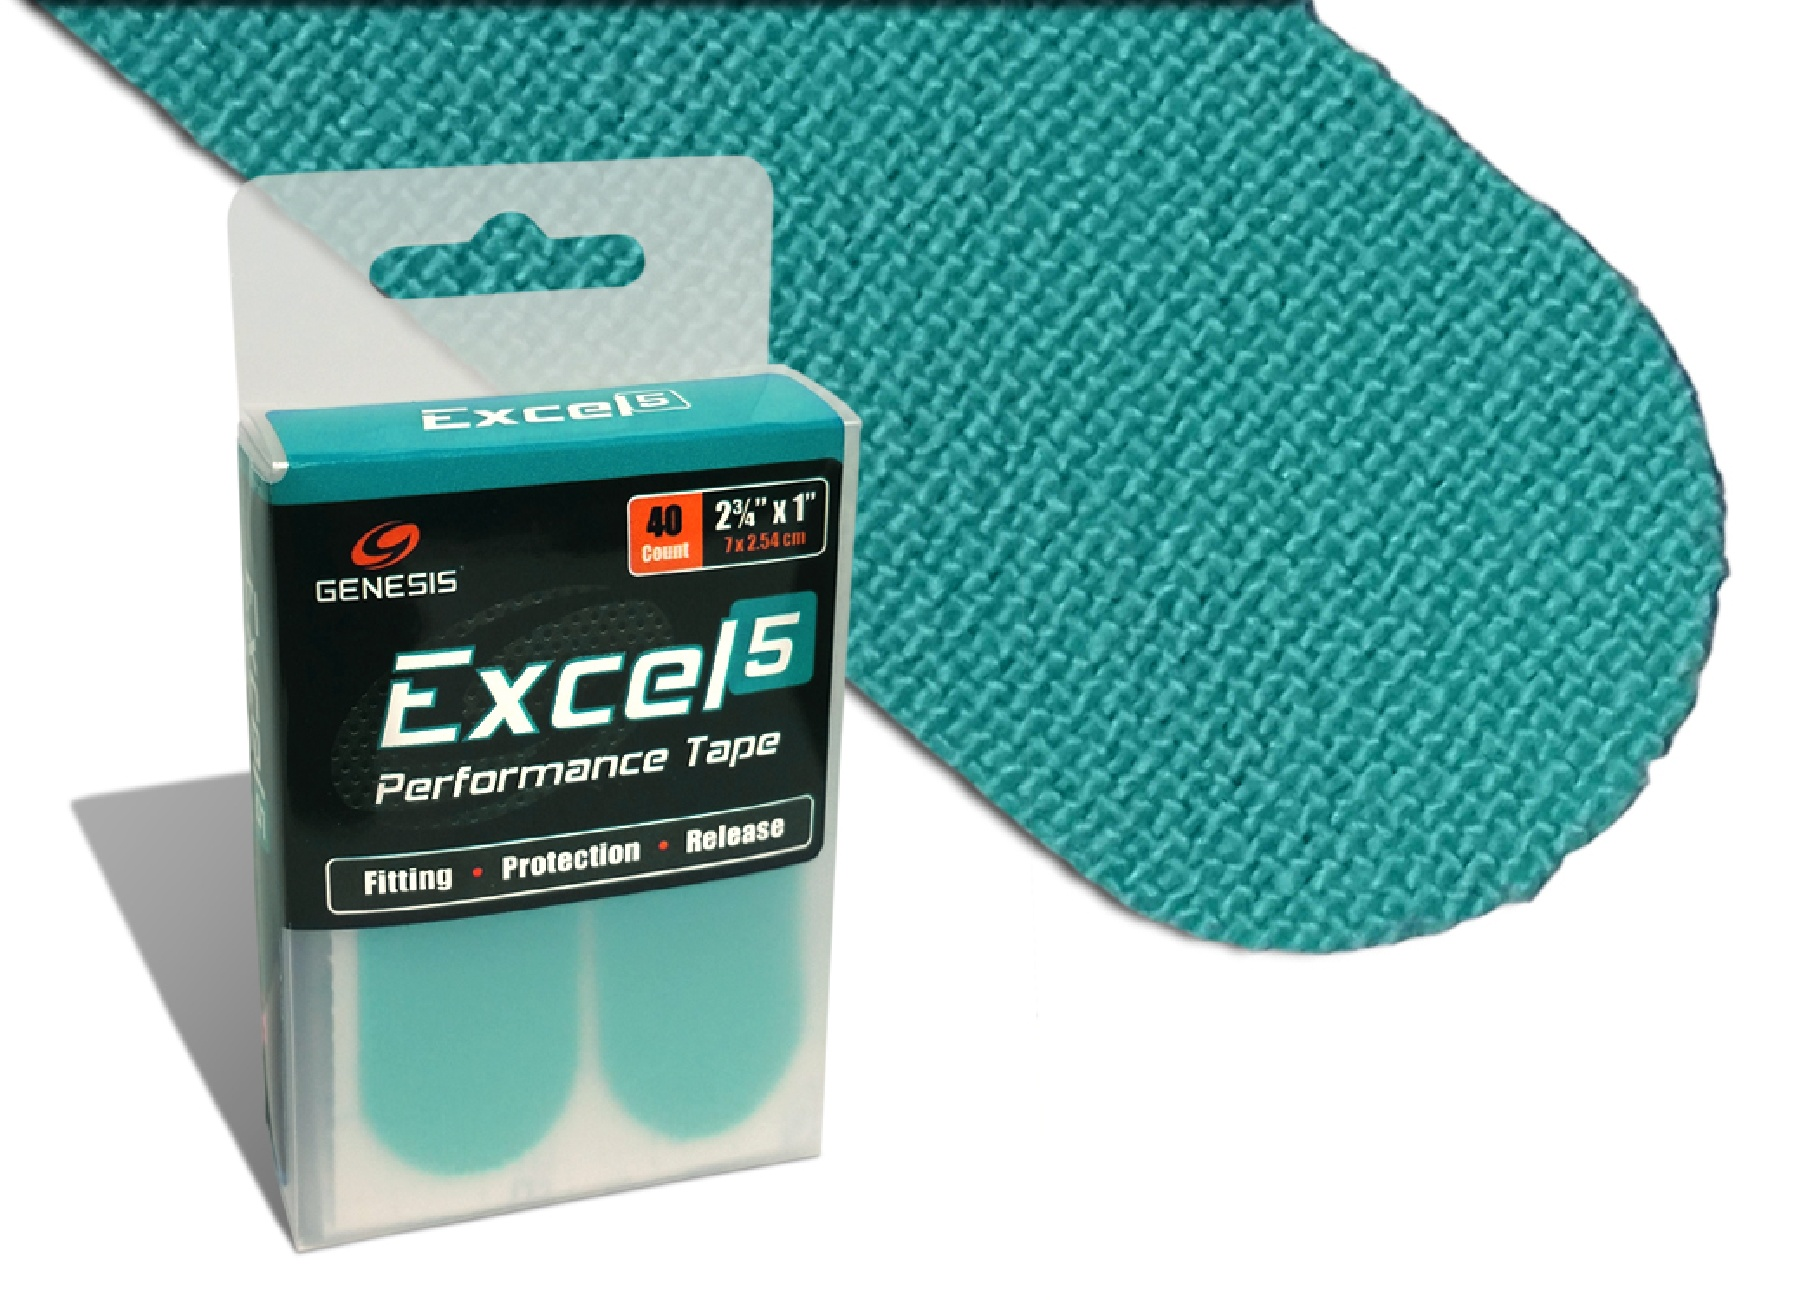 Genesis Excel Performance Tape 5 - Aqua